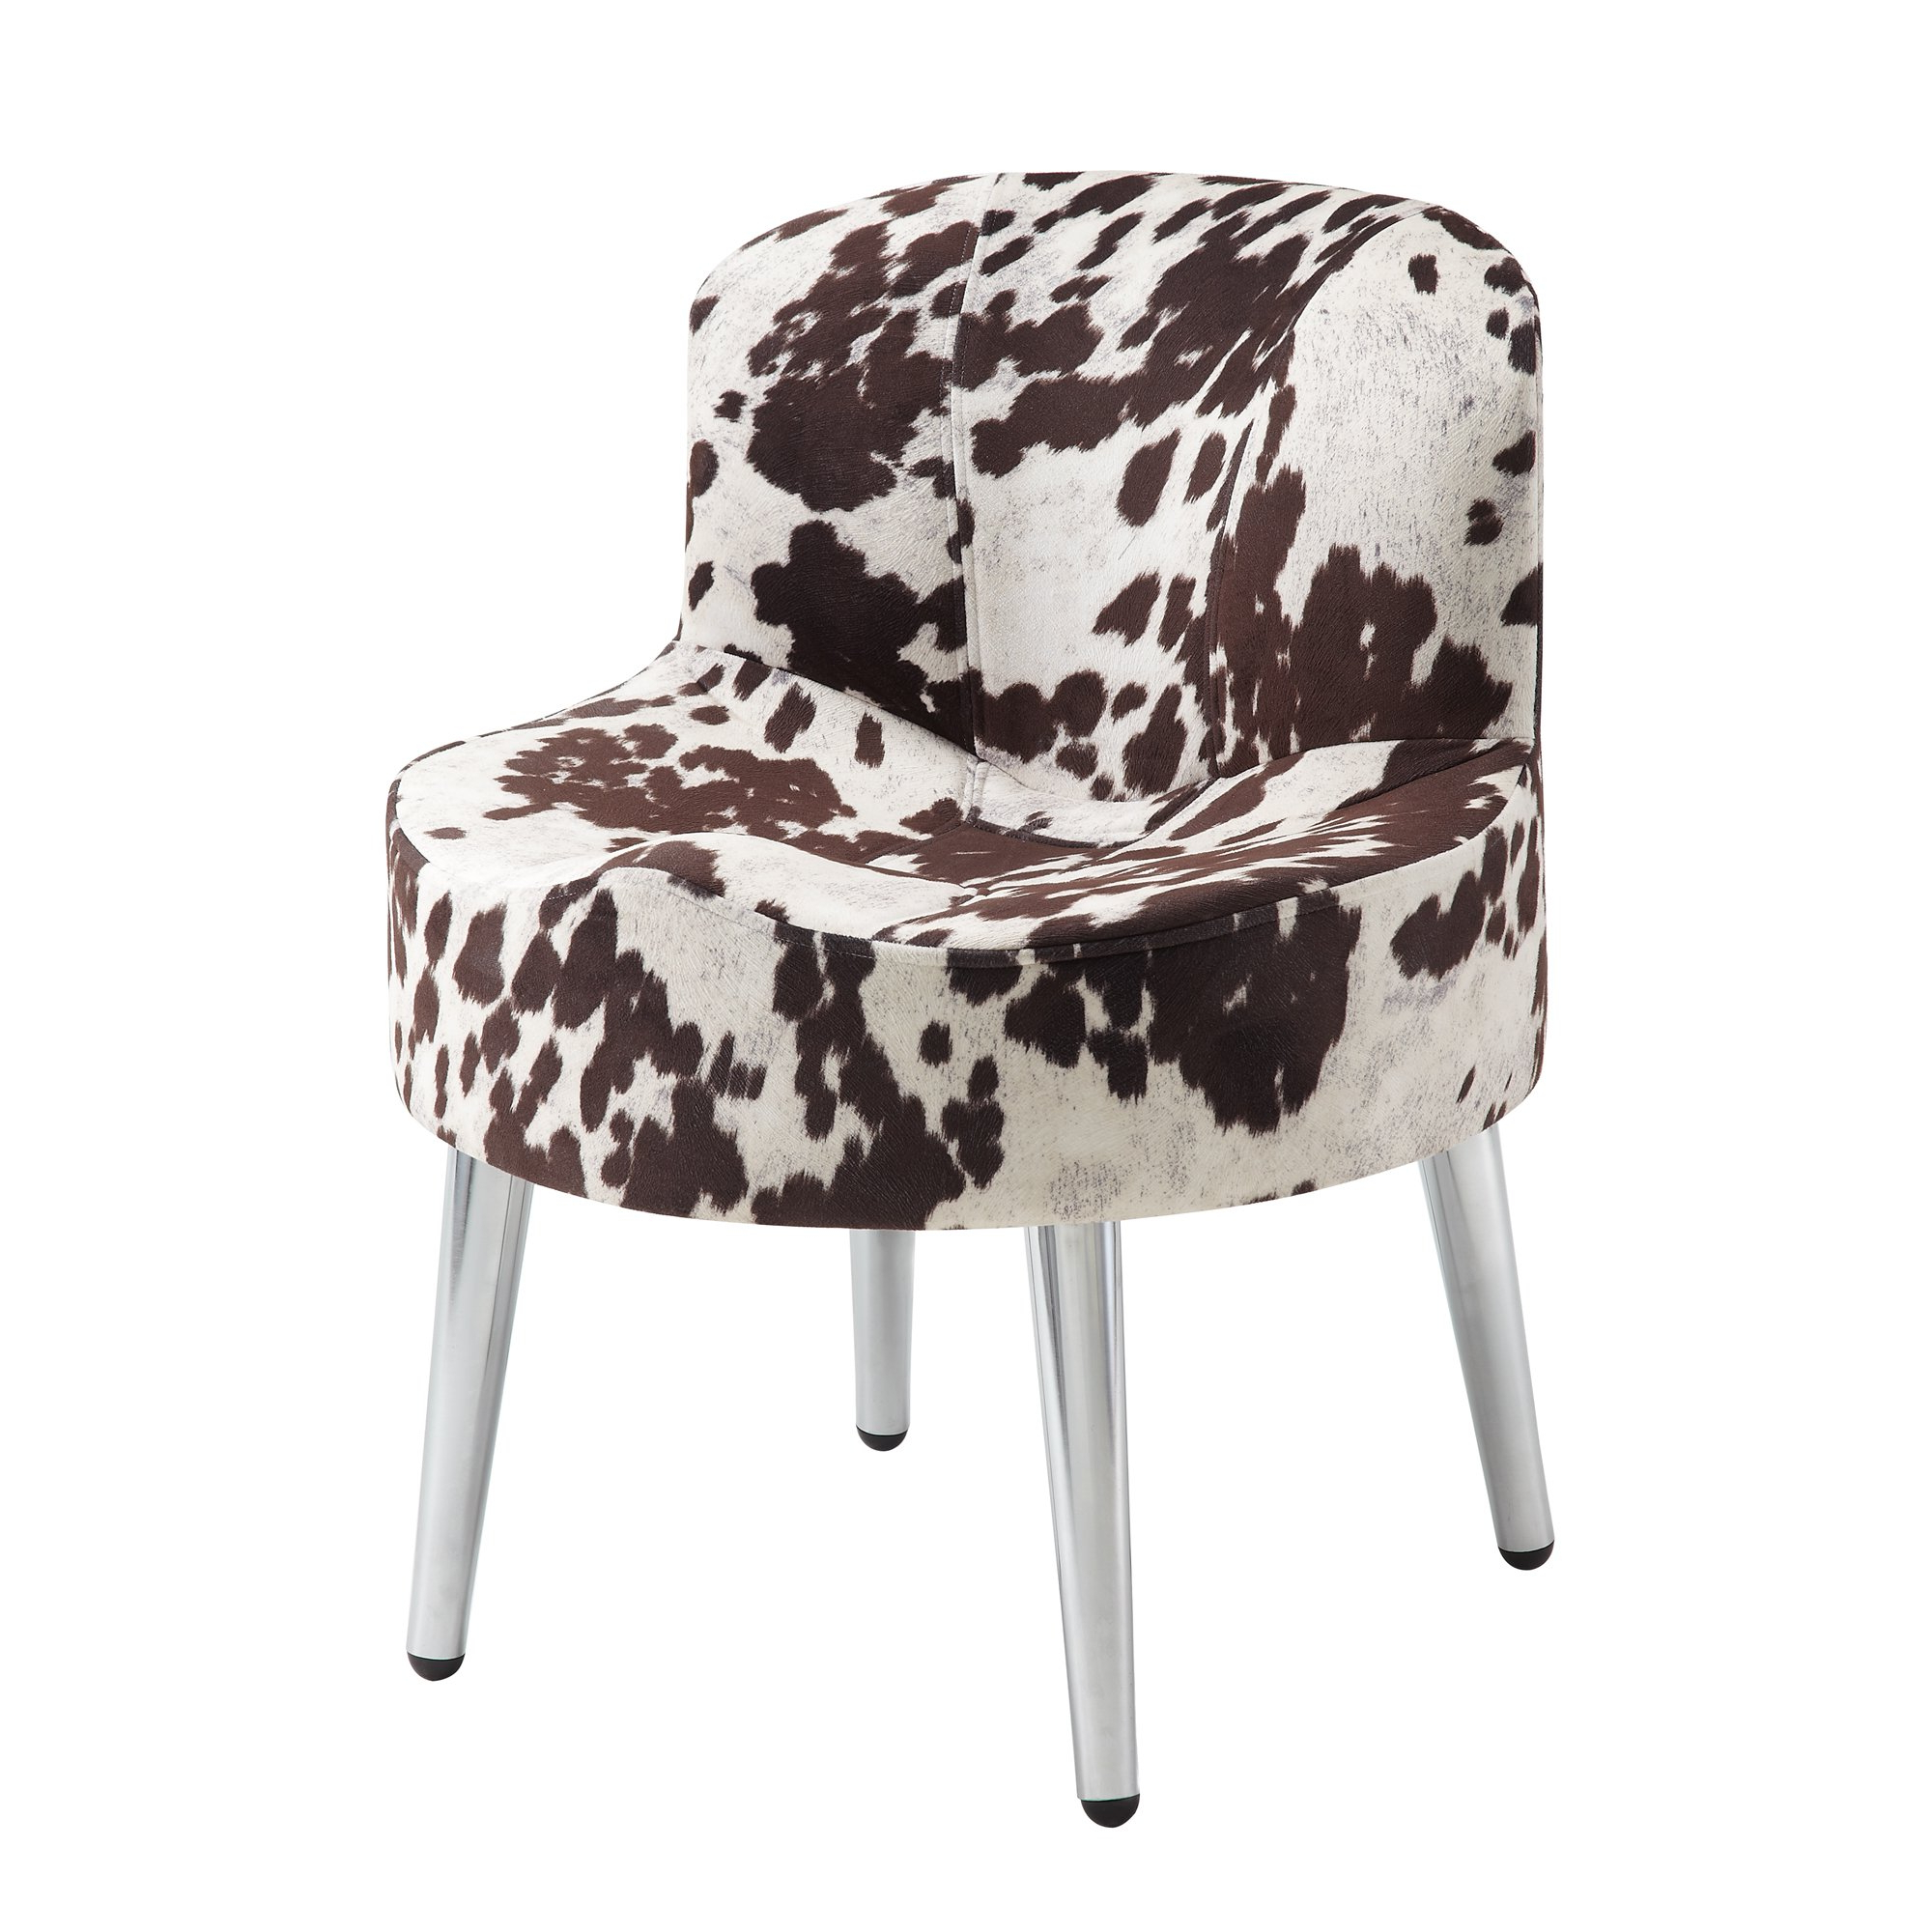 Widely Used Shop Tribecca Home Bridgeport Ergonomic Contour Cowhide Fabric Inside Circuit Swivel Accent Chairs (Gallery 9 of 20)